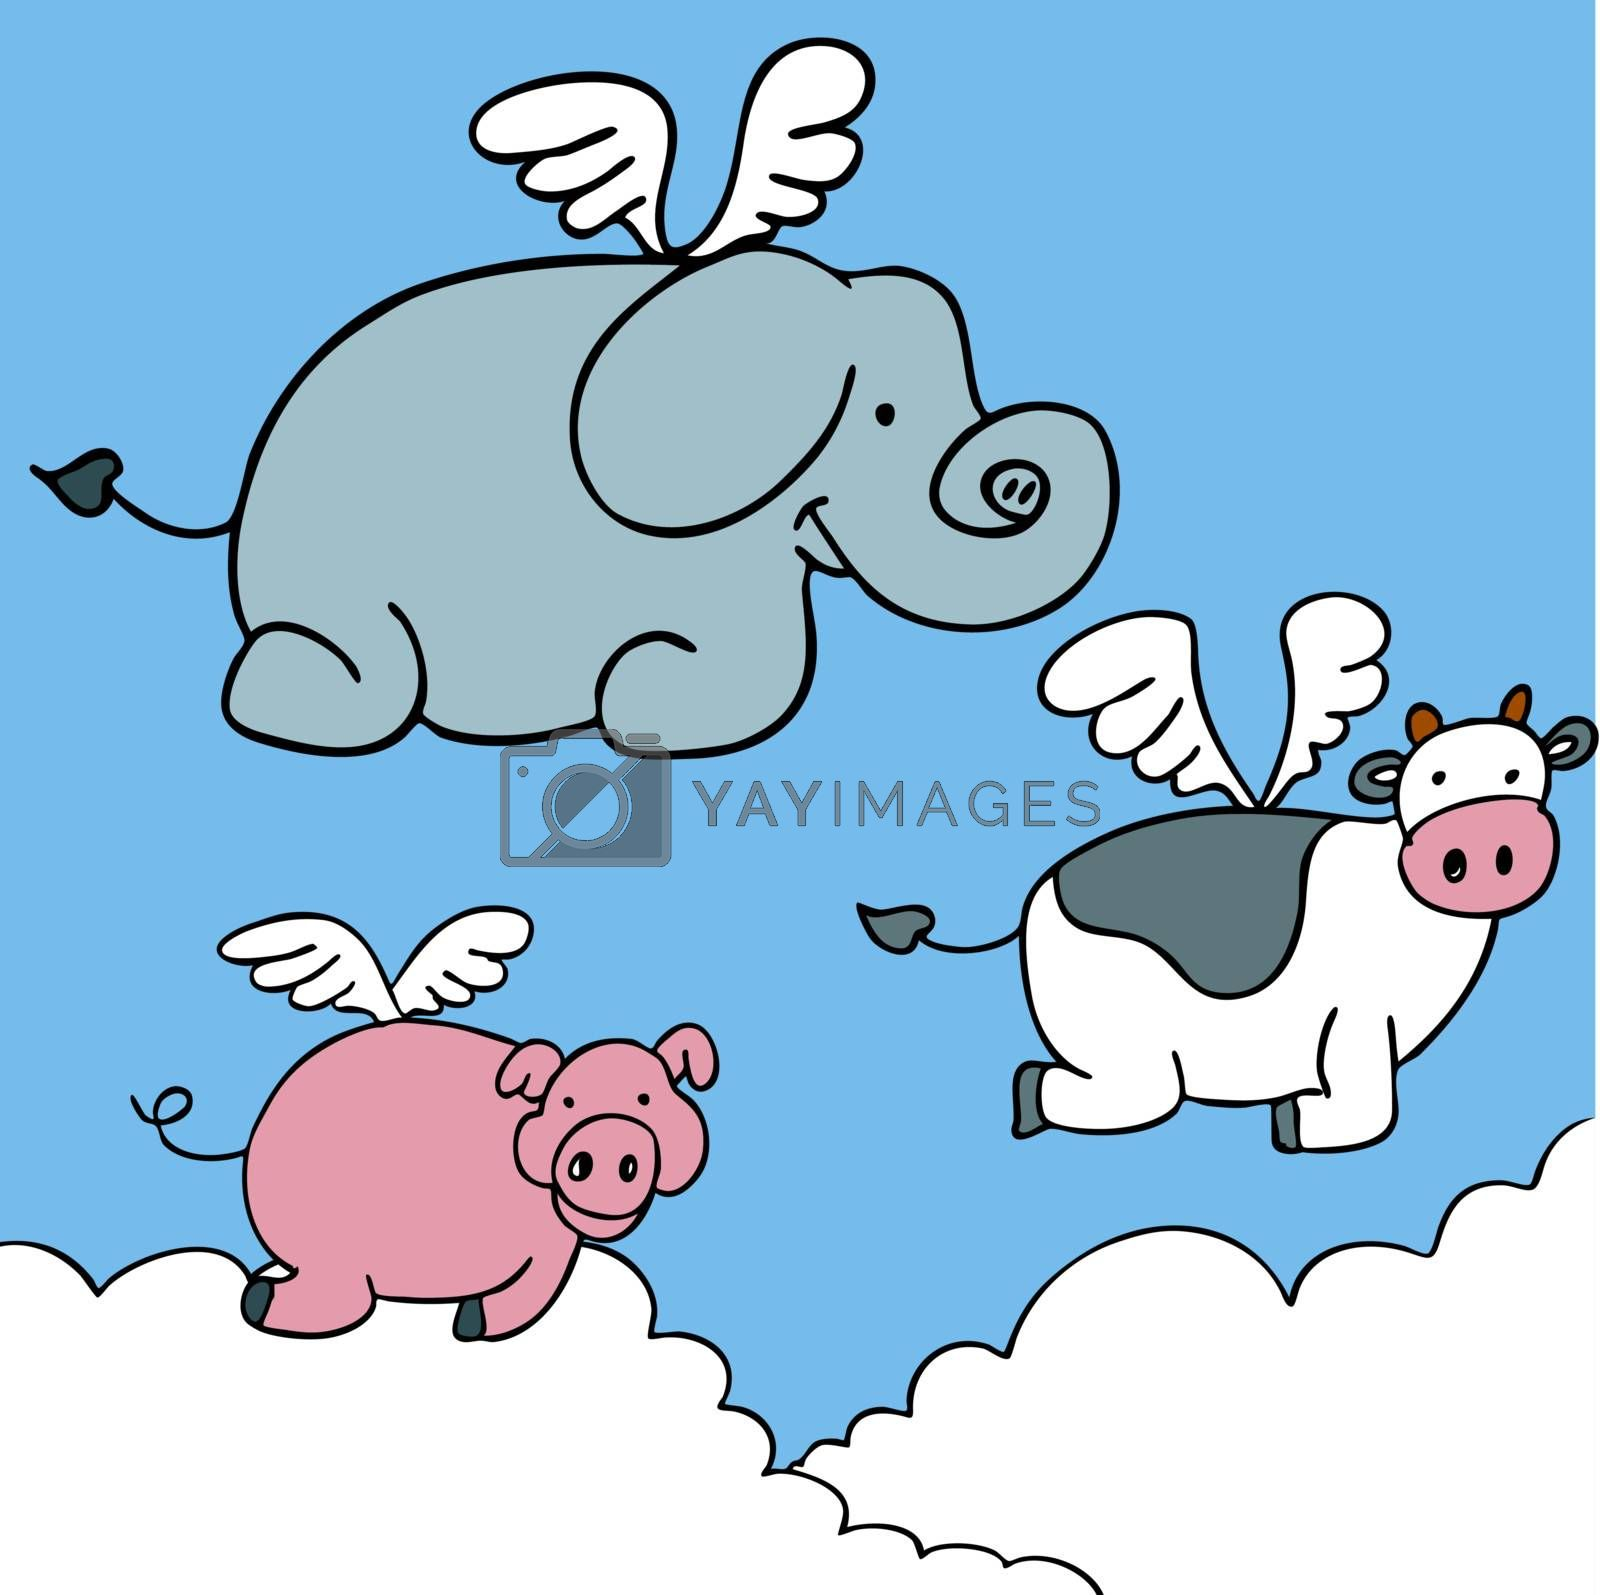 An image of flying animals.